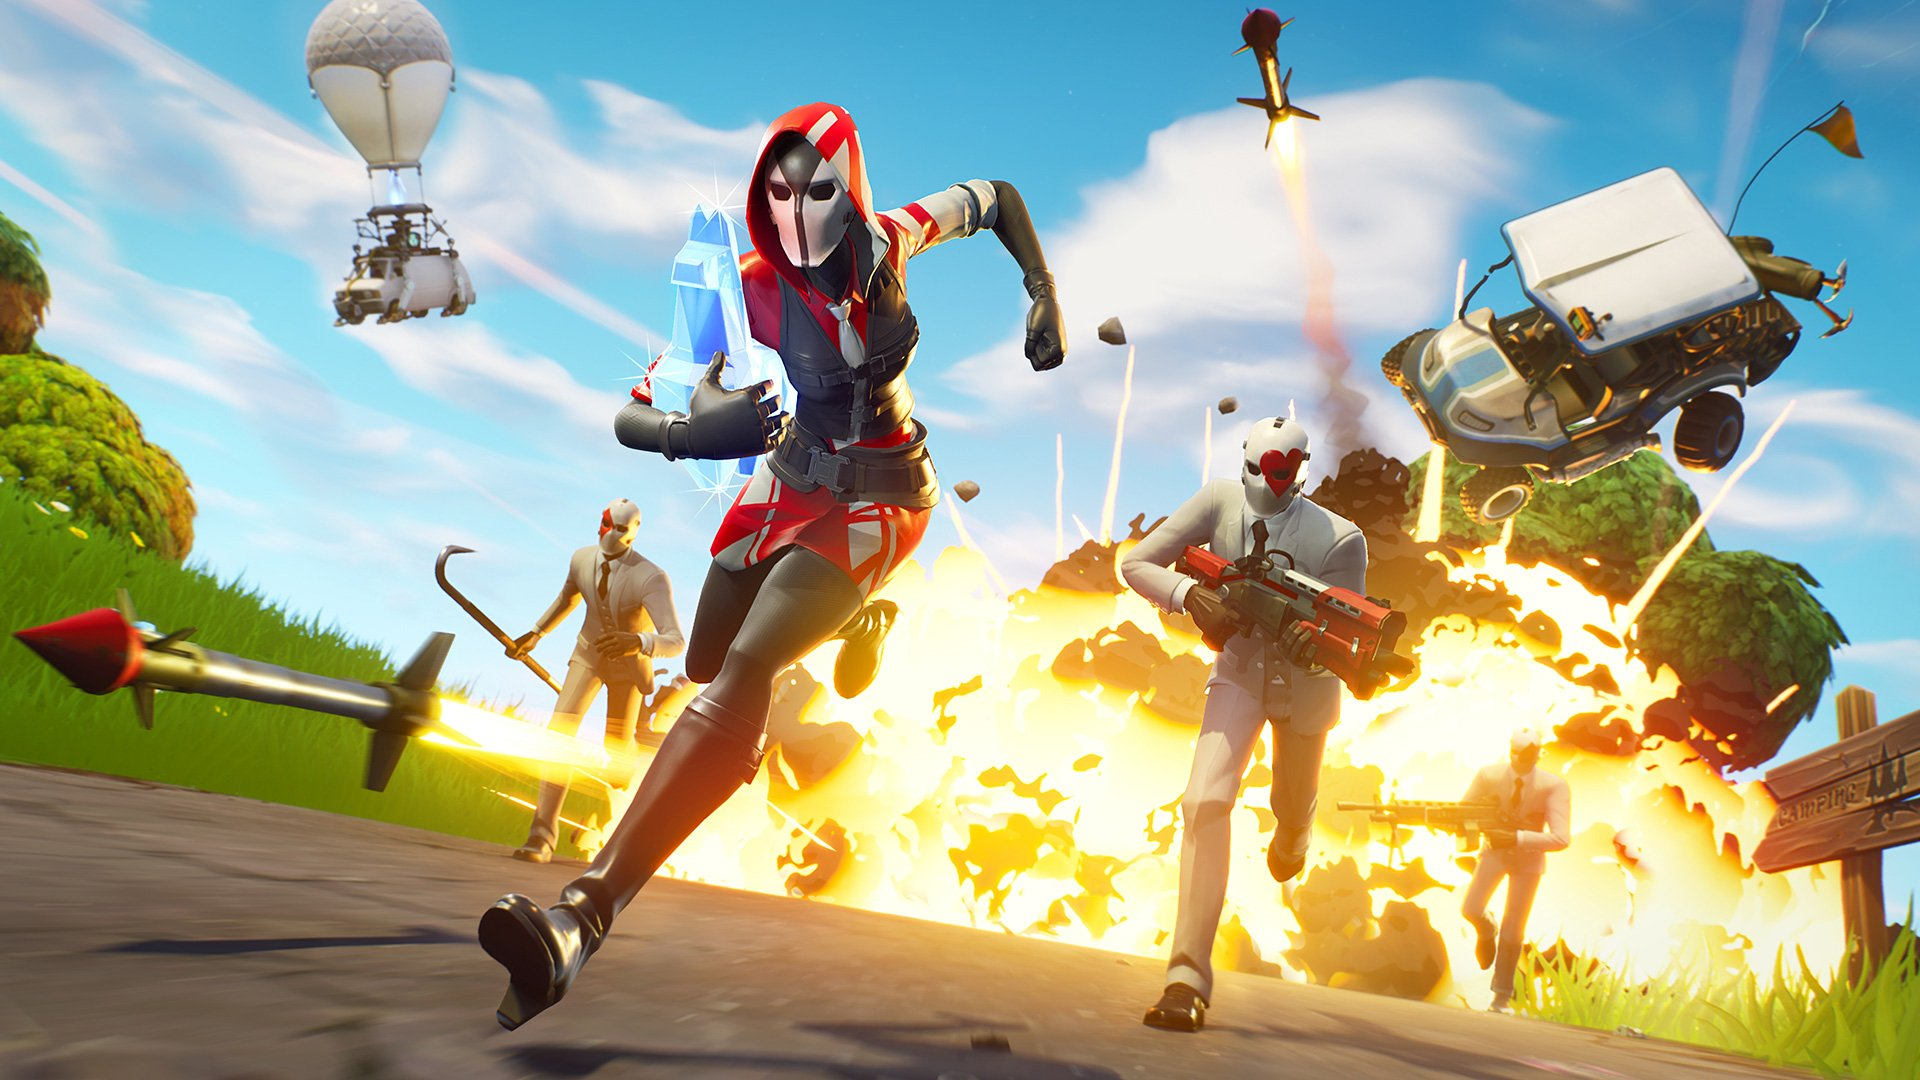 Fortnite will offer a PS4 unlink feature and account merging screenshot